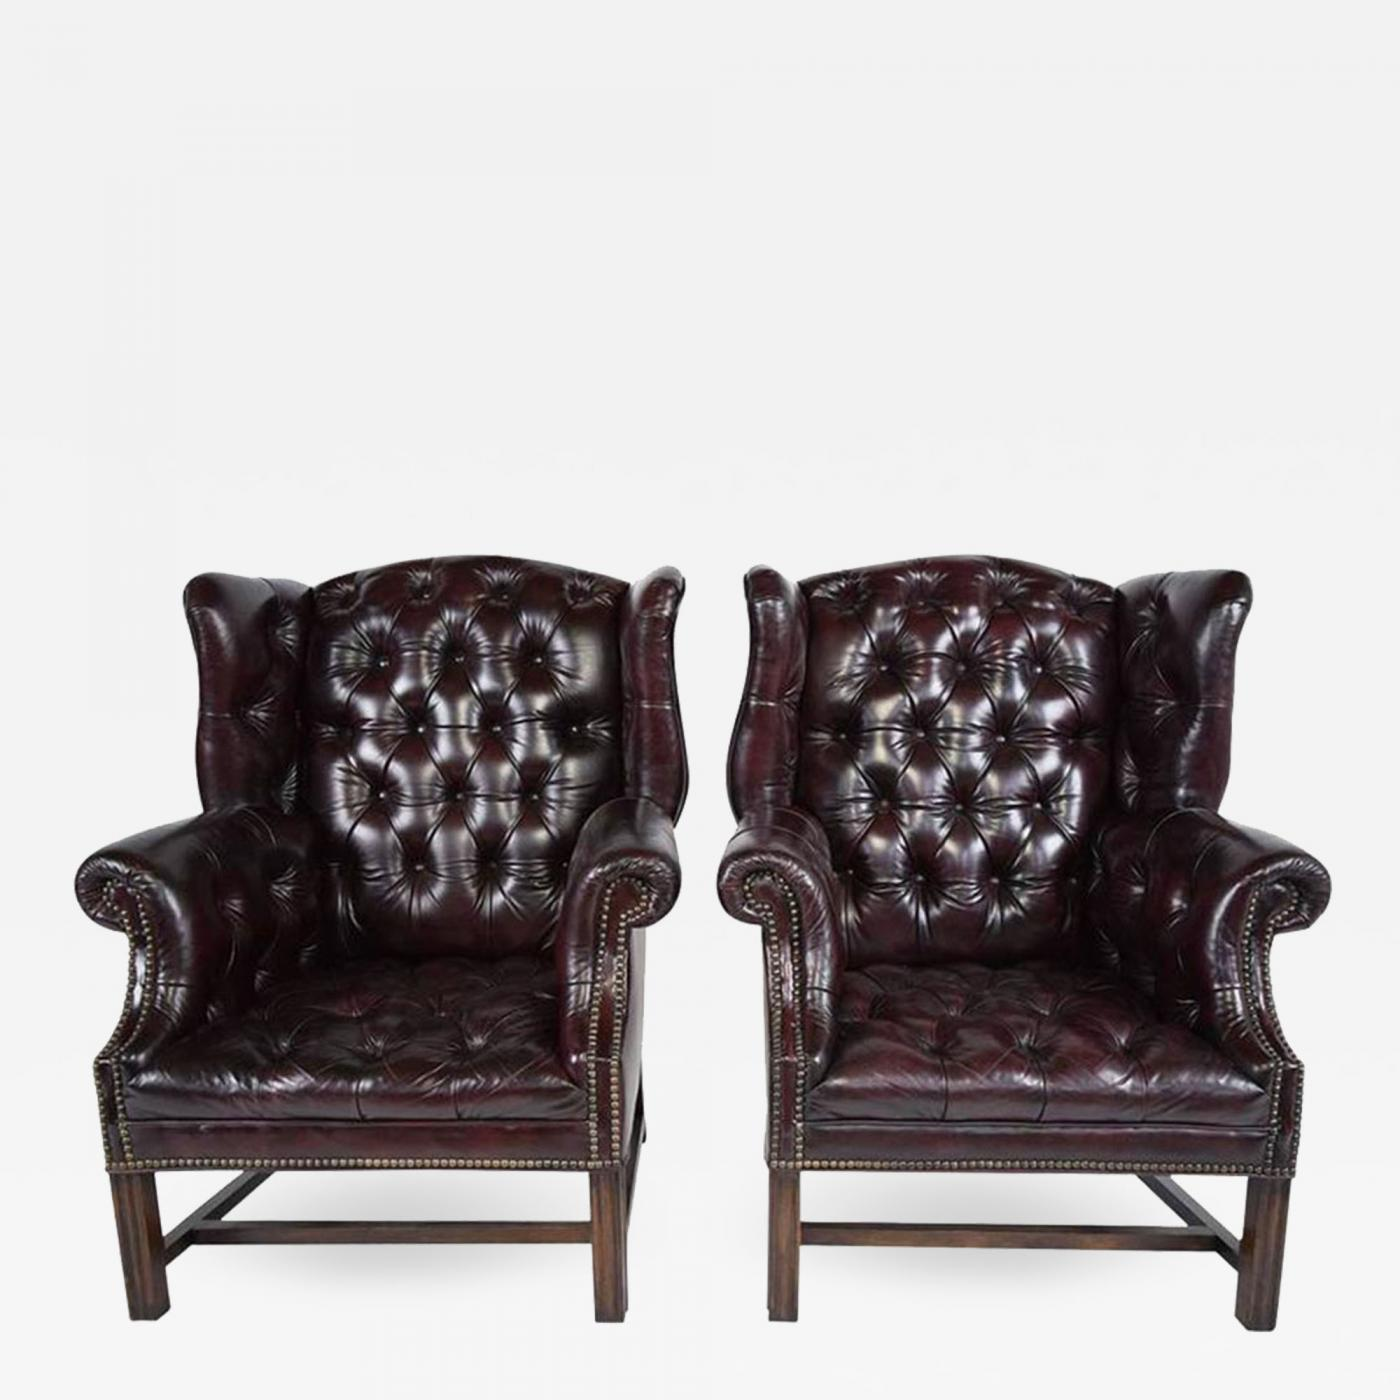 Listings / Furniture / Seating / Wingback Chairs · Pair of Chesterfield Tufted Leather Wingback Chairs & Pair of Chesterfield Tufted Leather Wingback Chairs